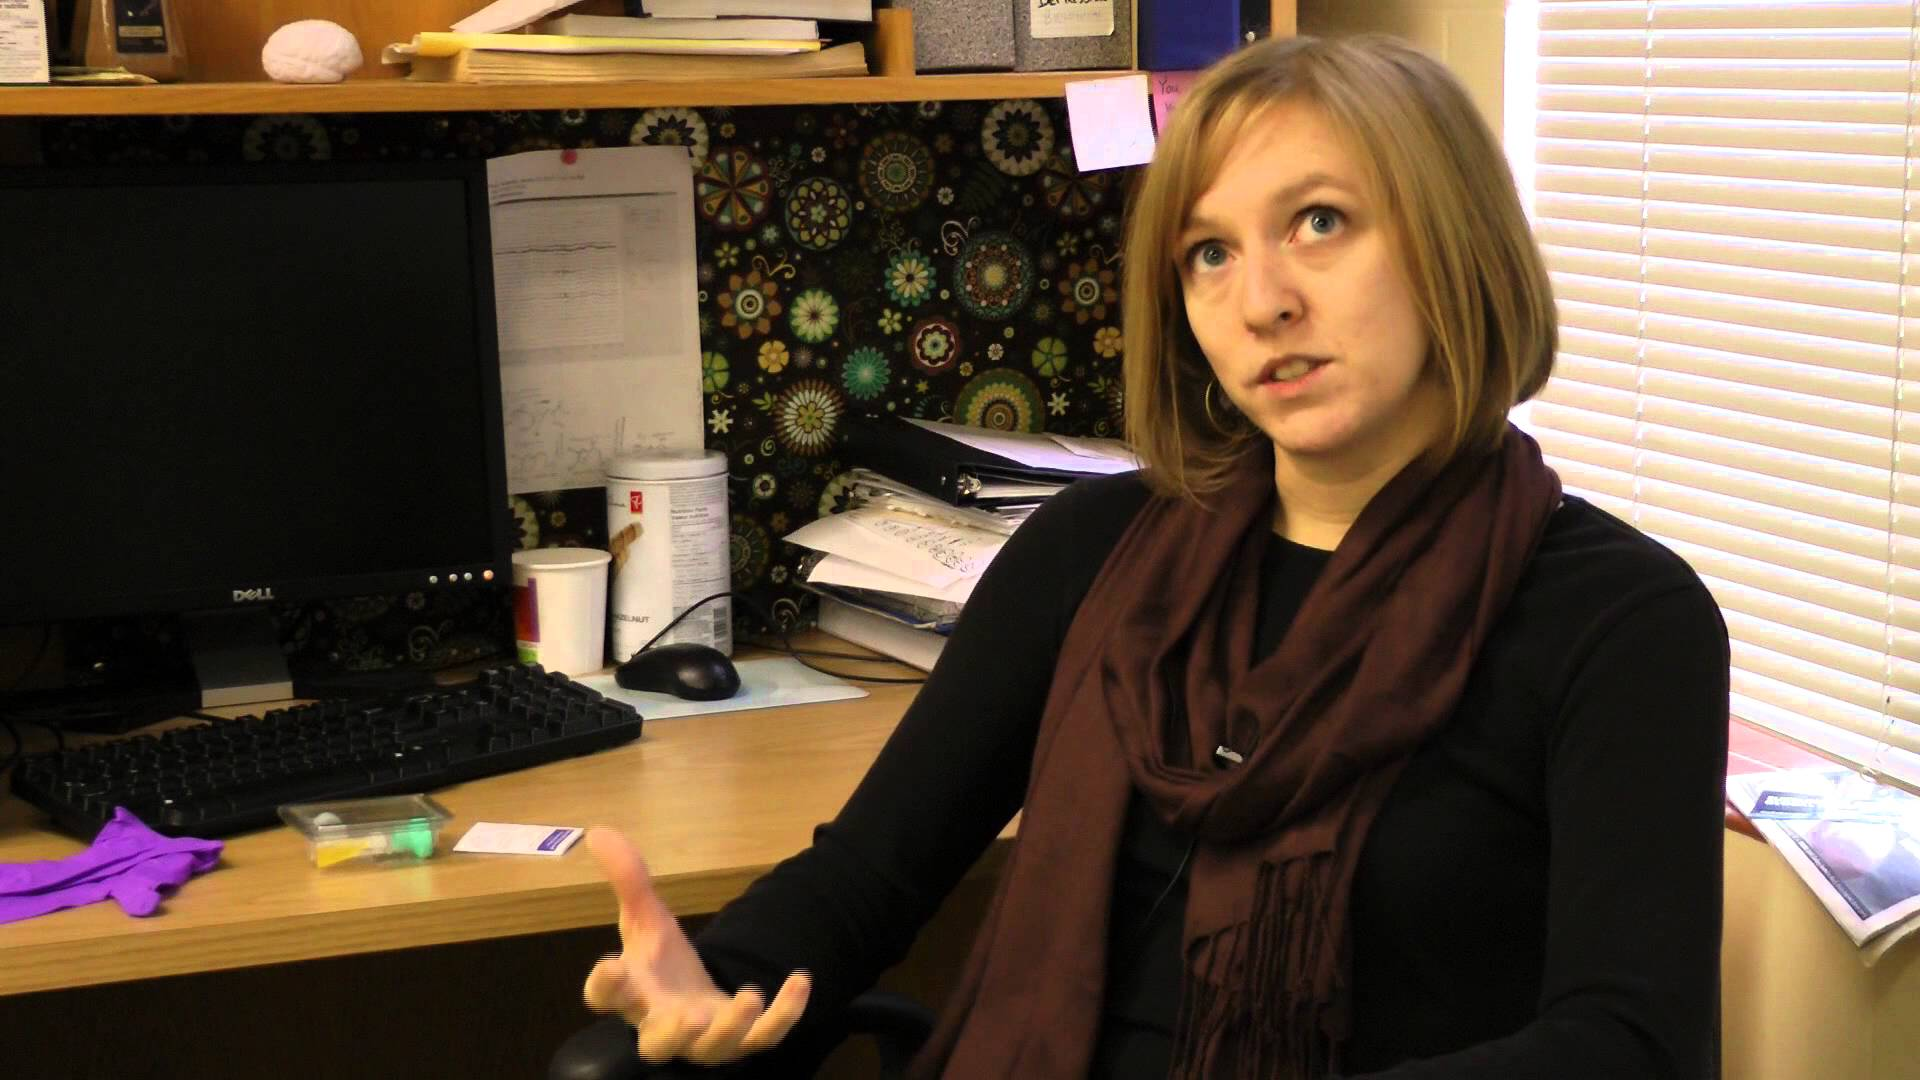 Laura Friberg Explains Her Facebook Research